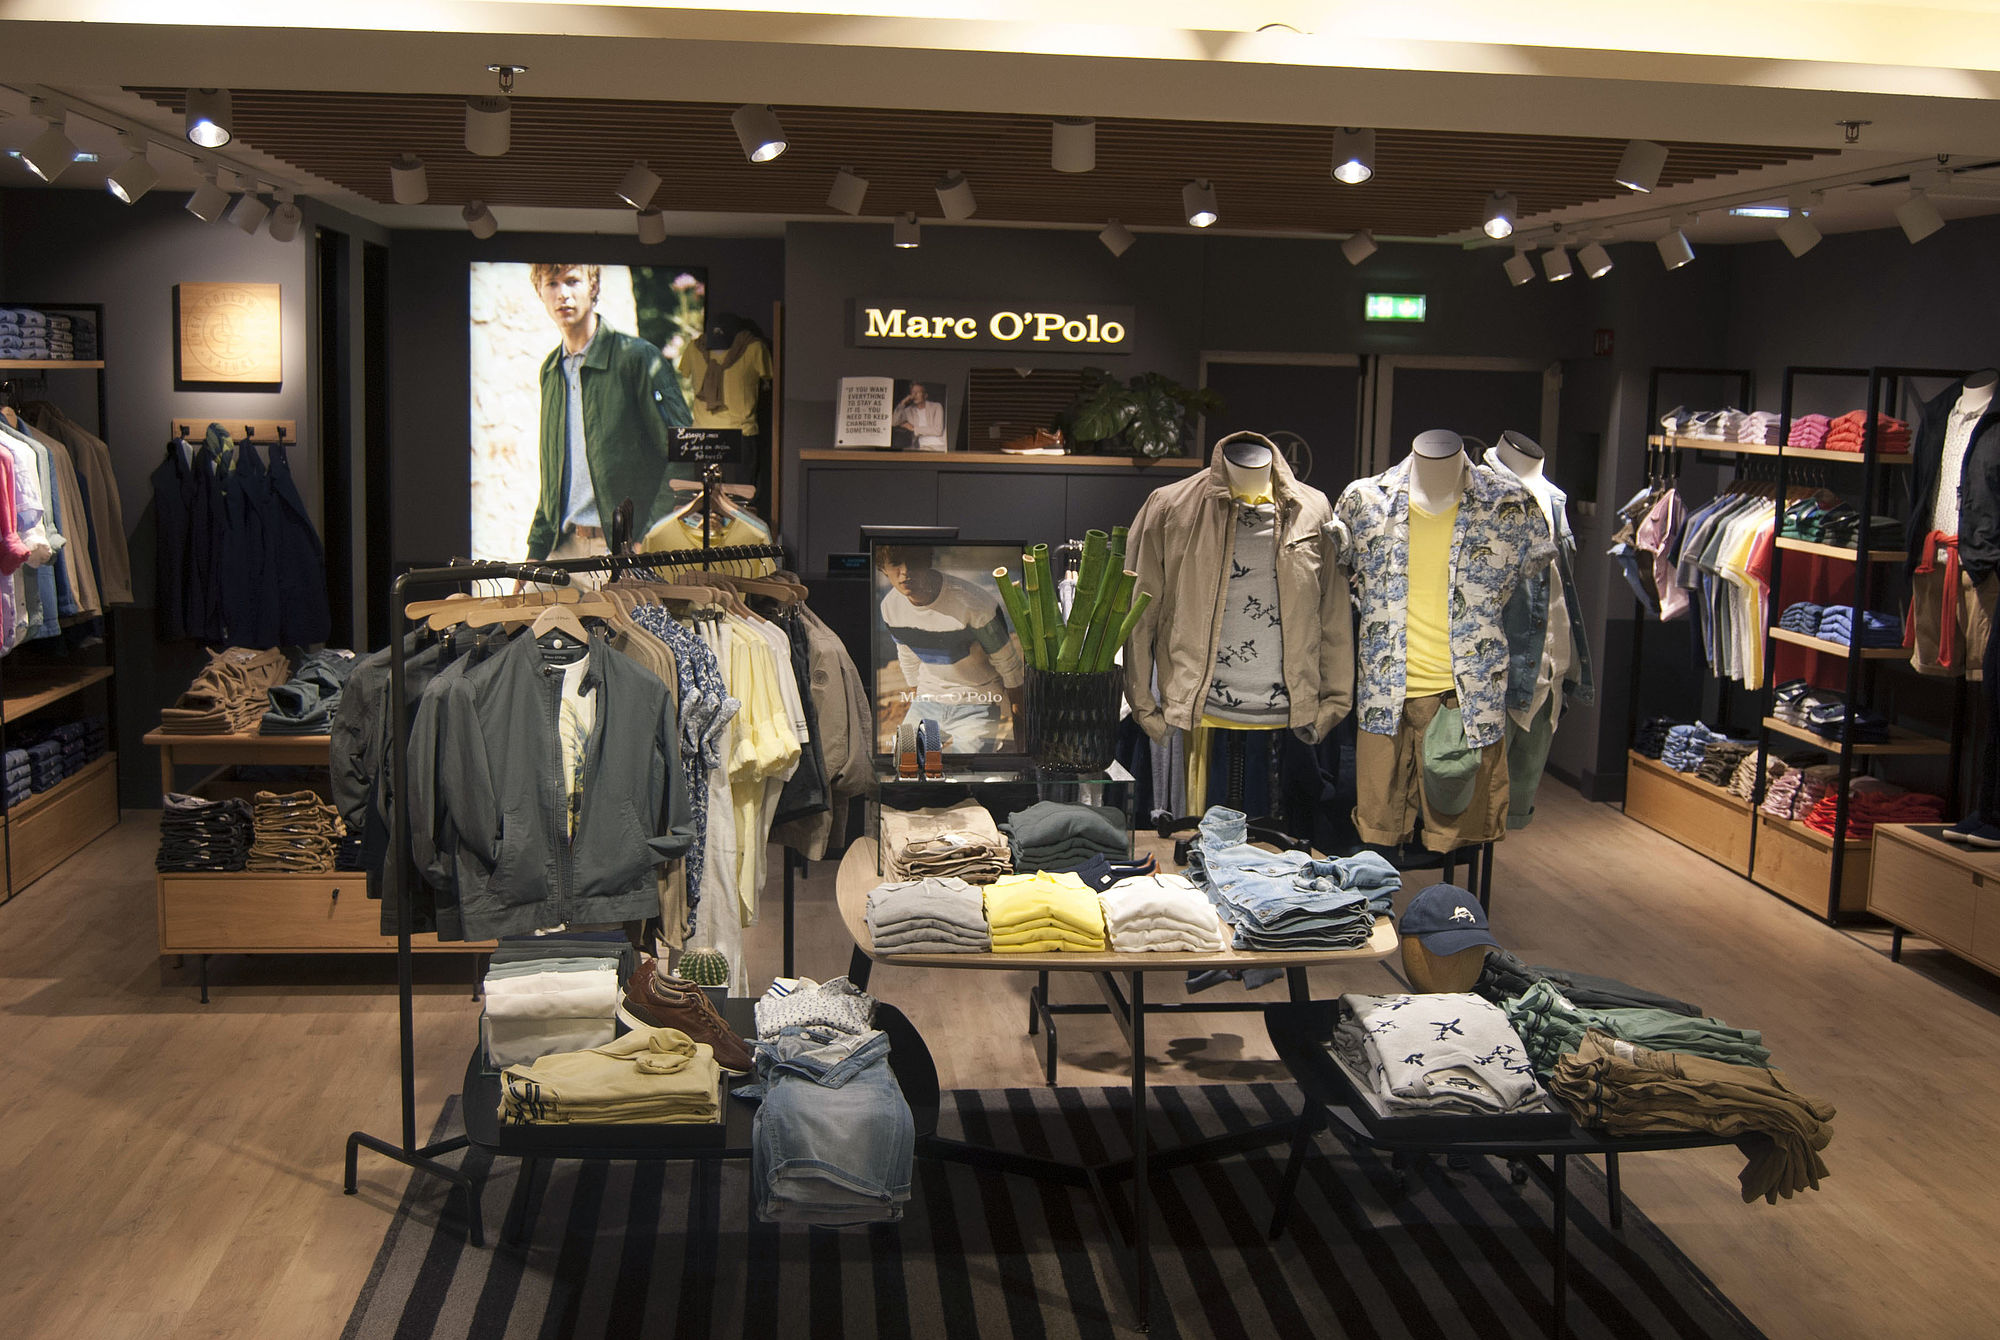 hot sale online ec101 68db3 MARC O'POLO and Galeries Lafayette celebrate the success of ...